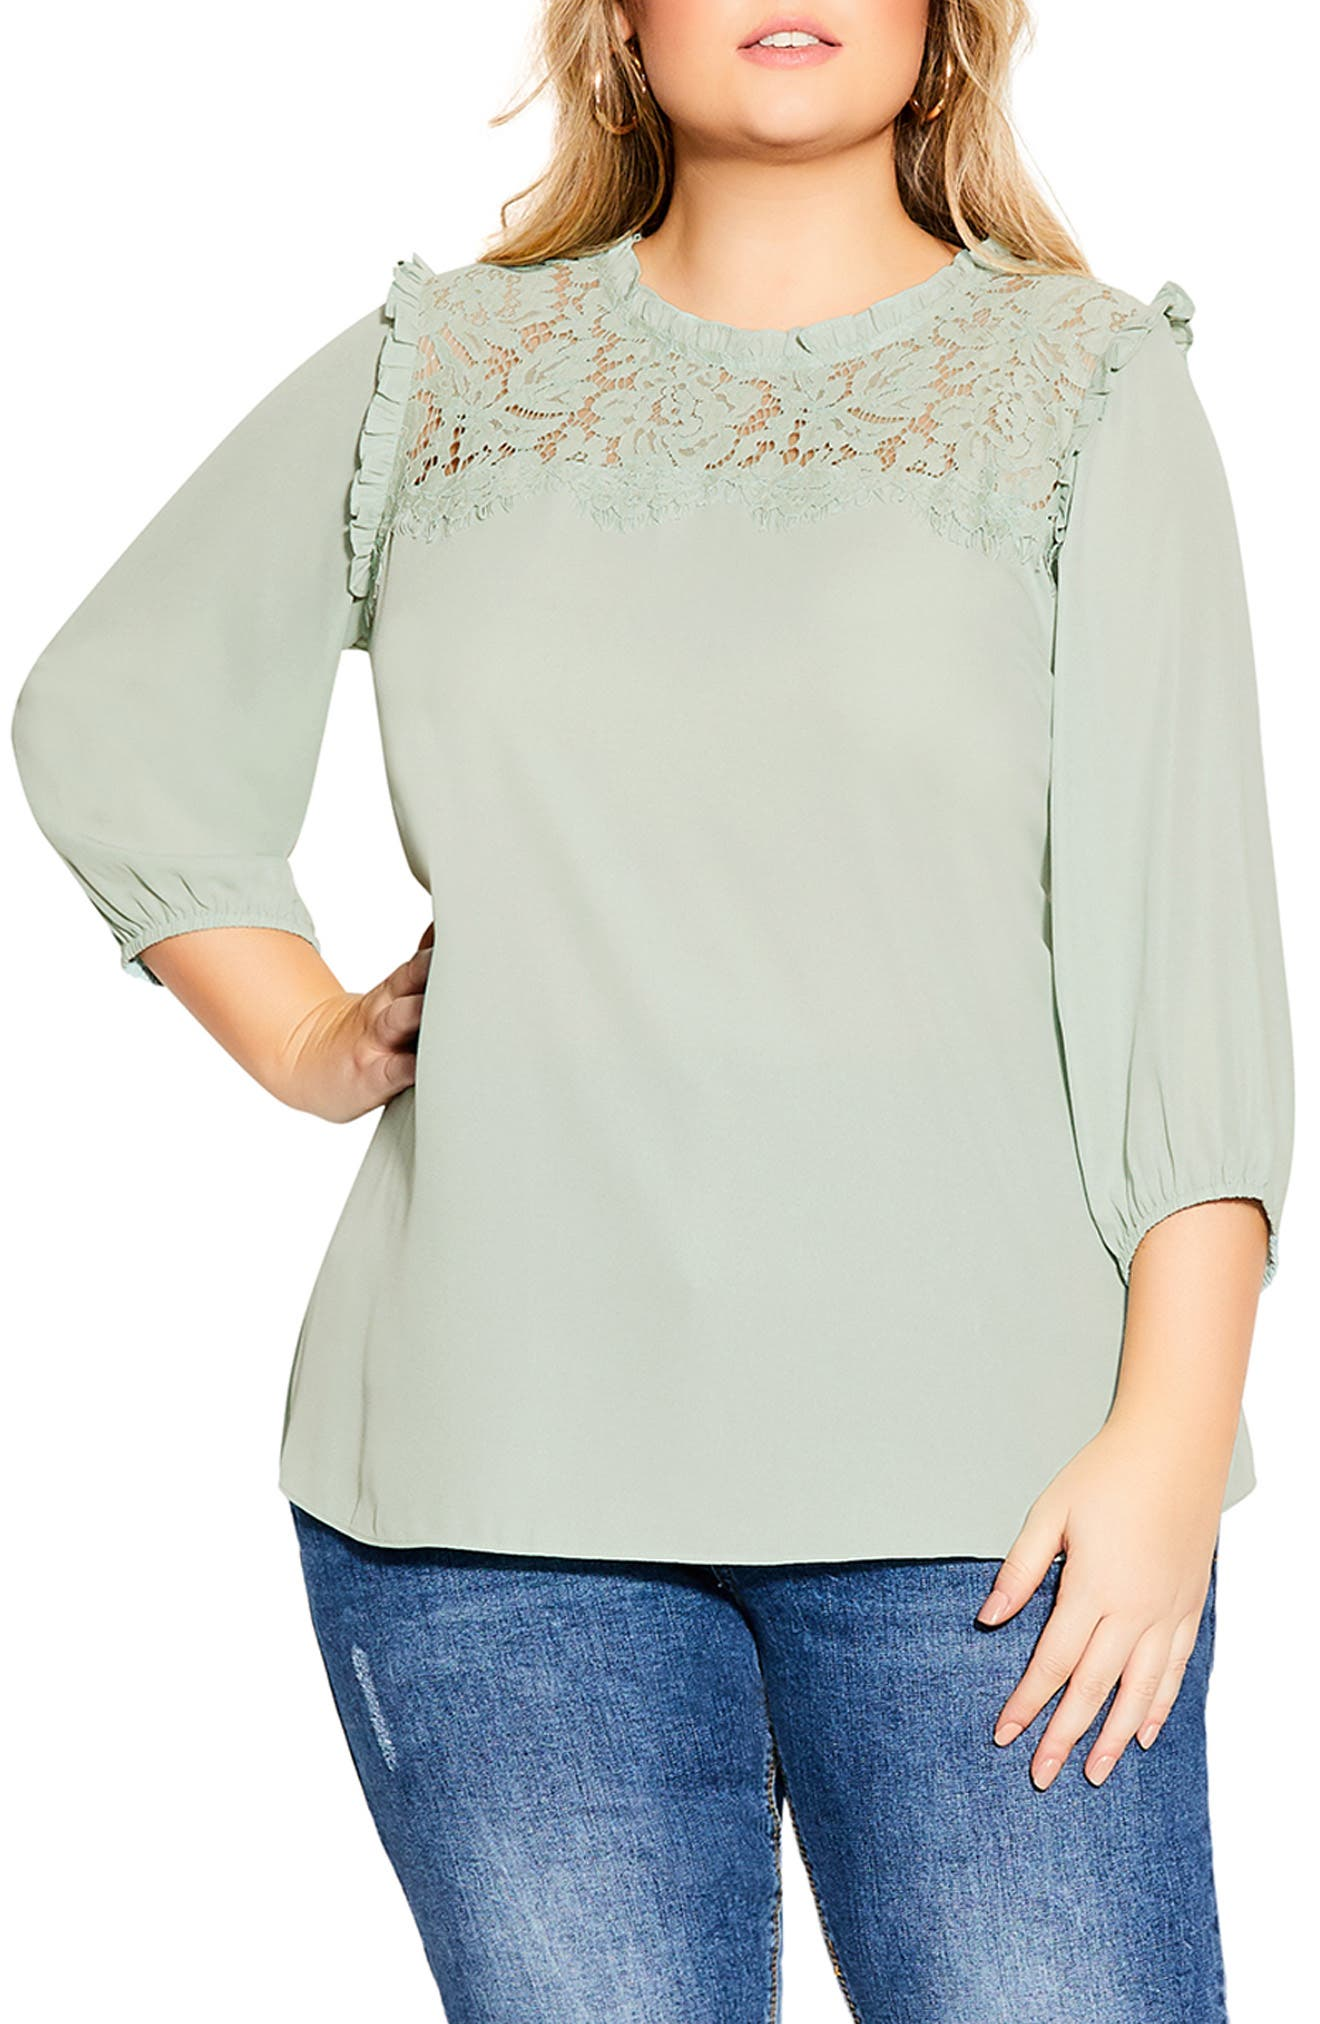 Lace Angel Top